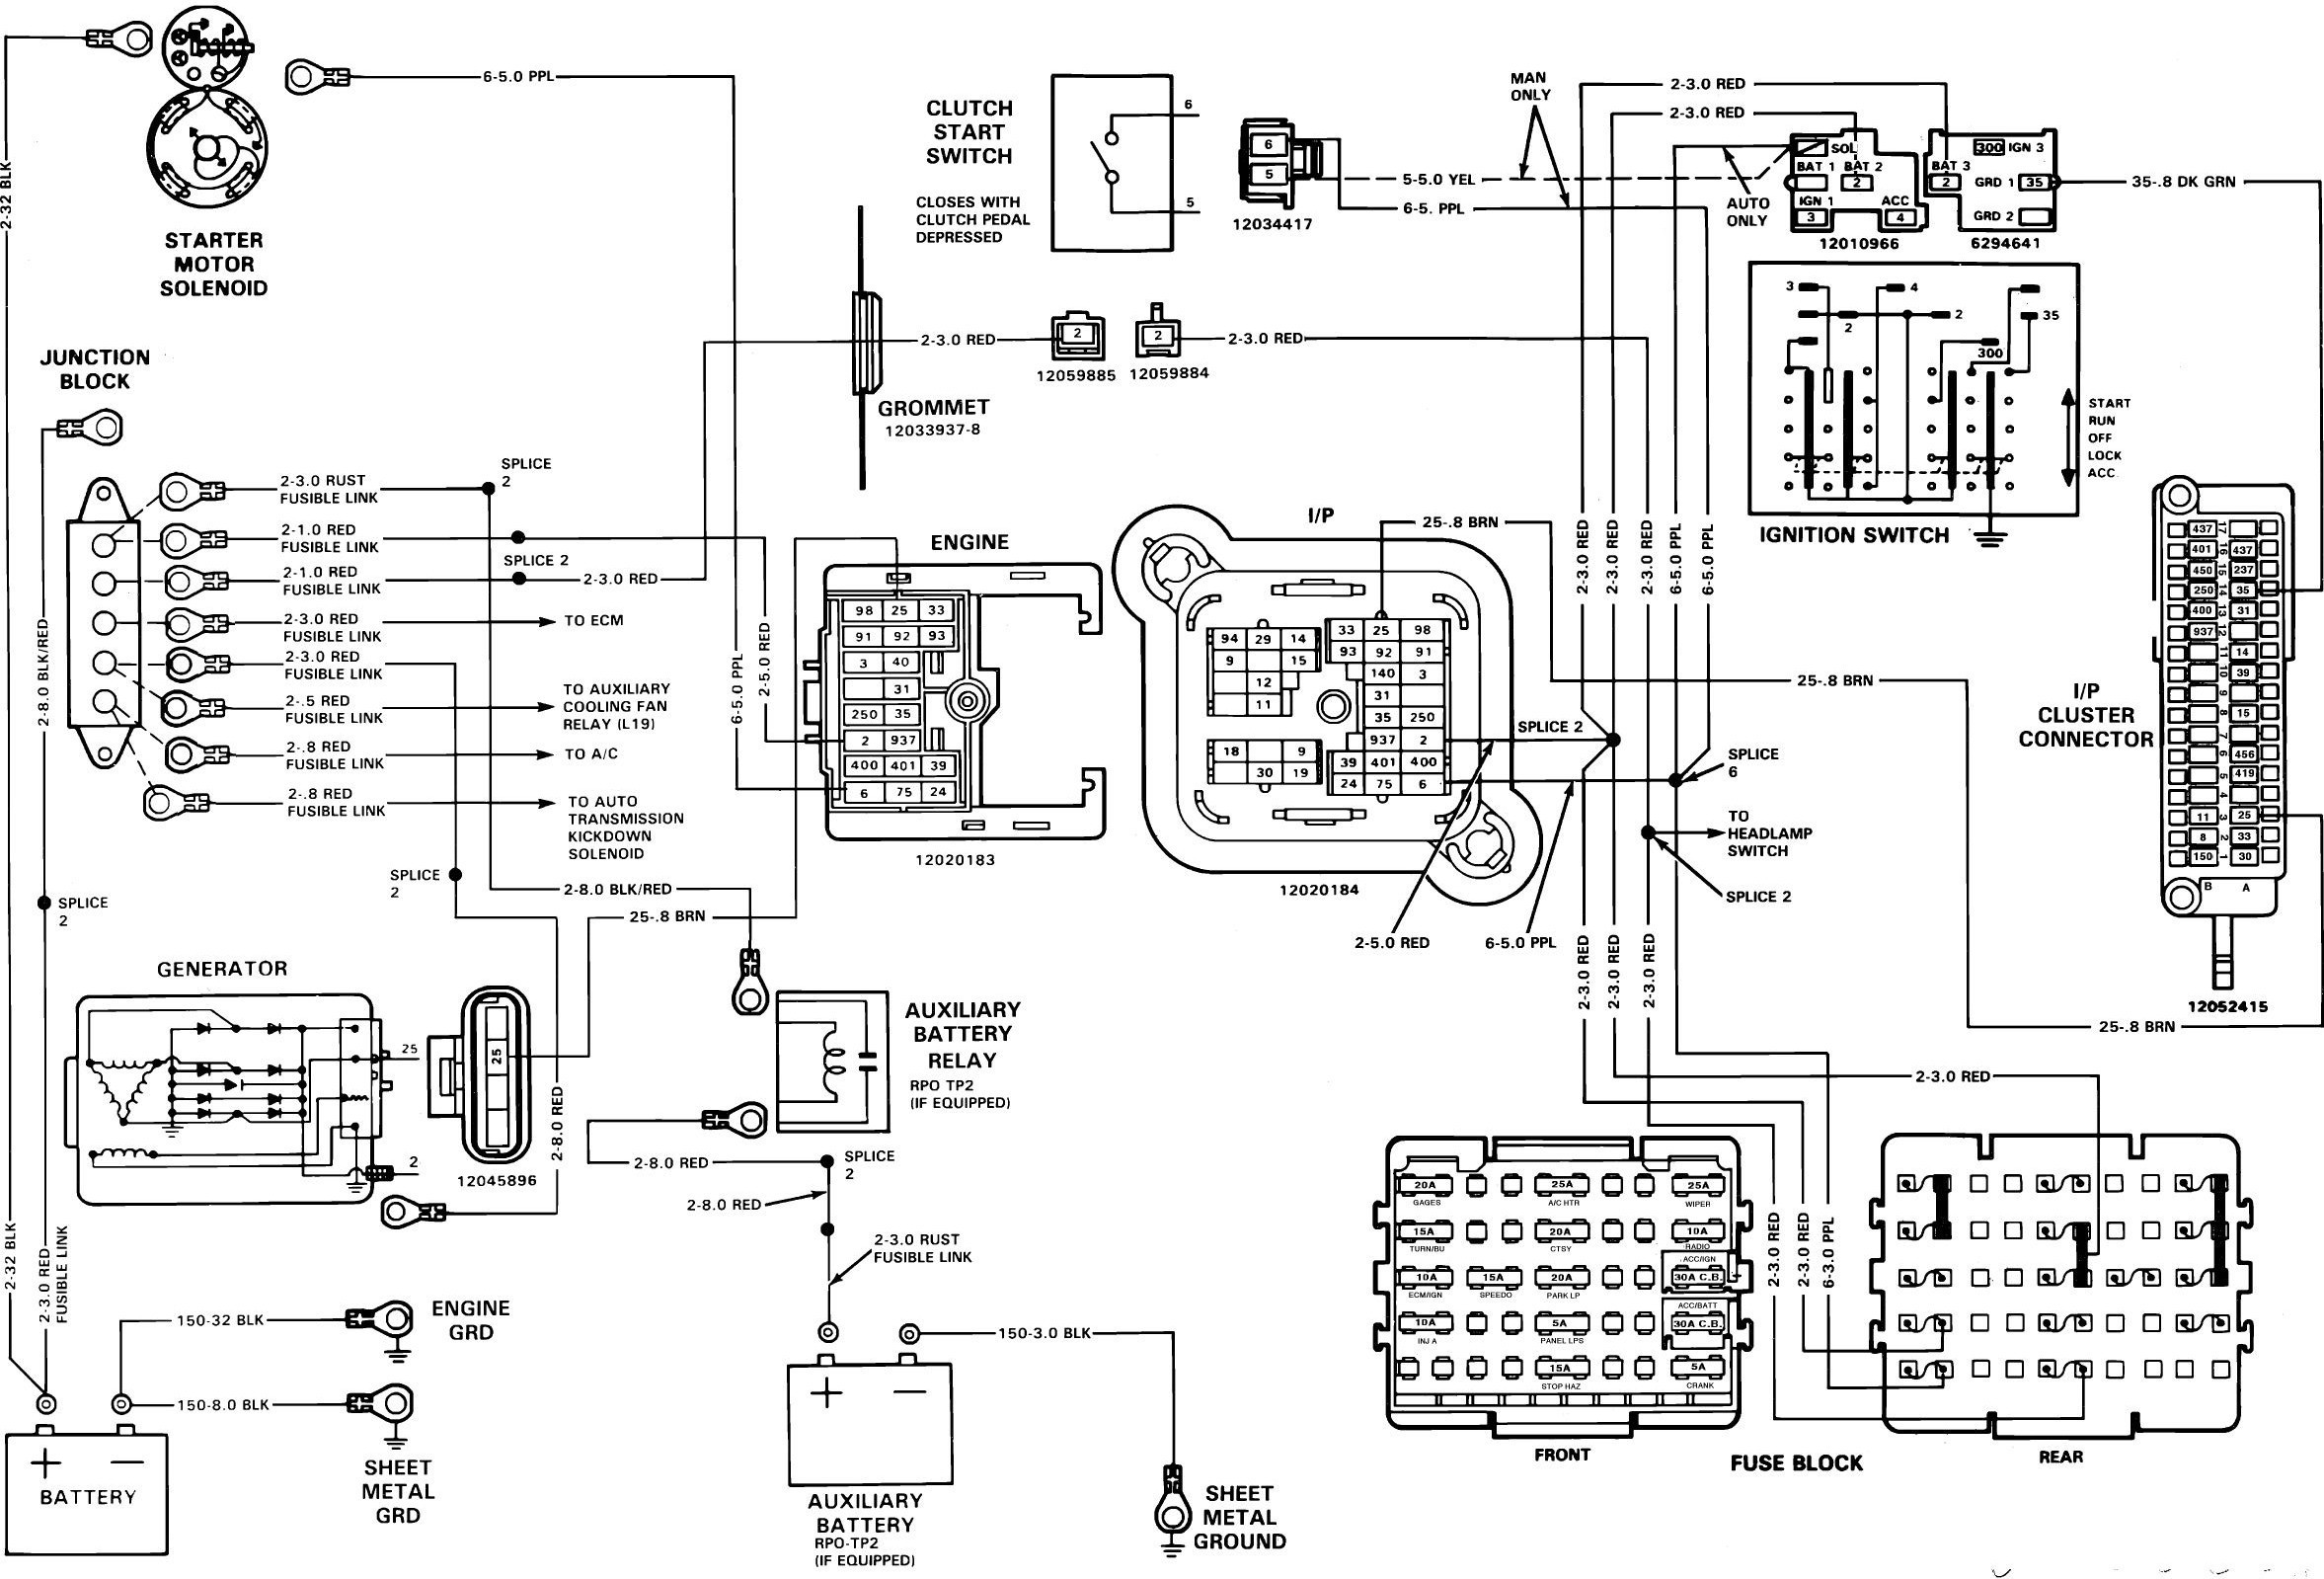 Sensor Diagram On 89 Chevy 350 - Wiring Diagram & Electricity Basics ...